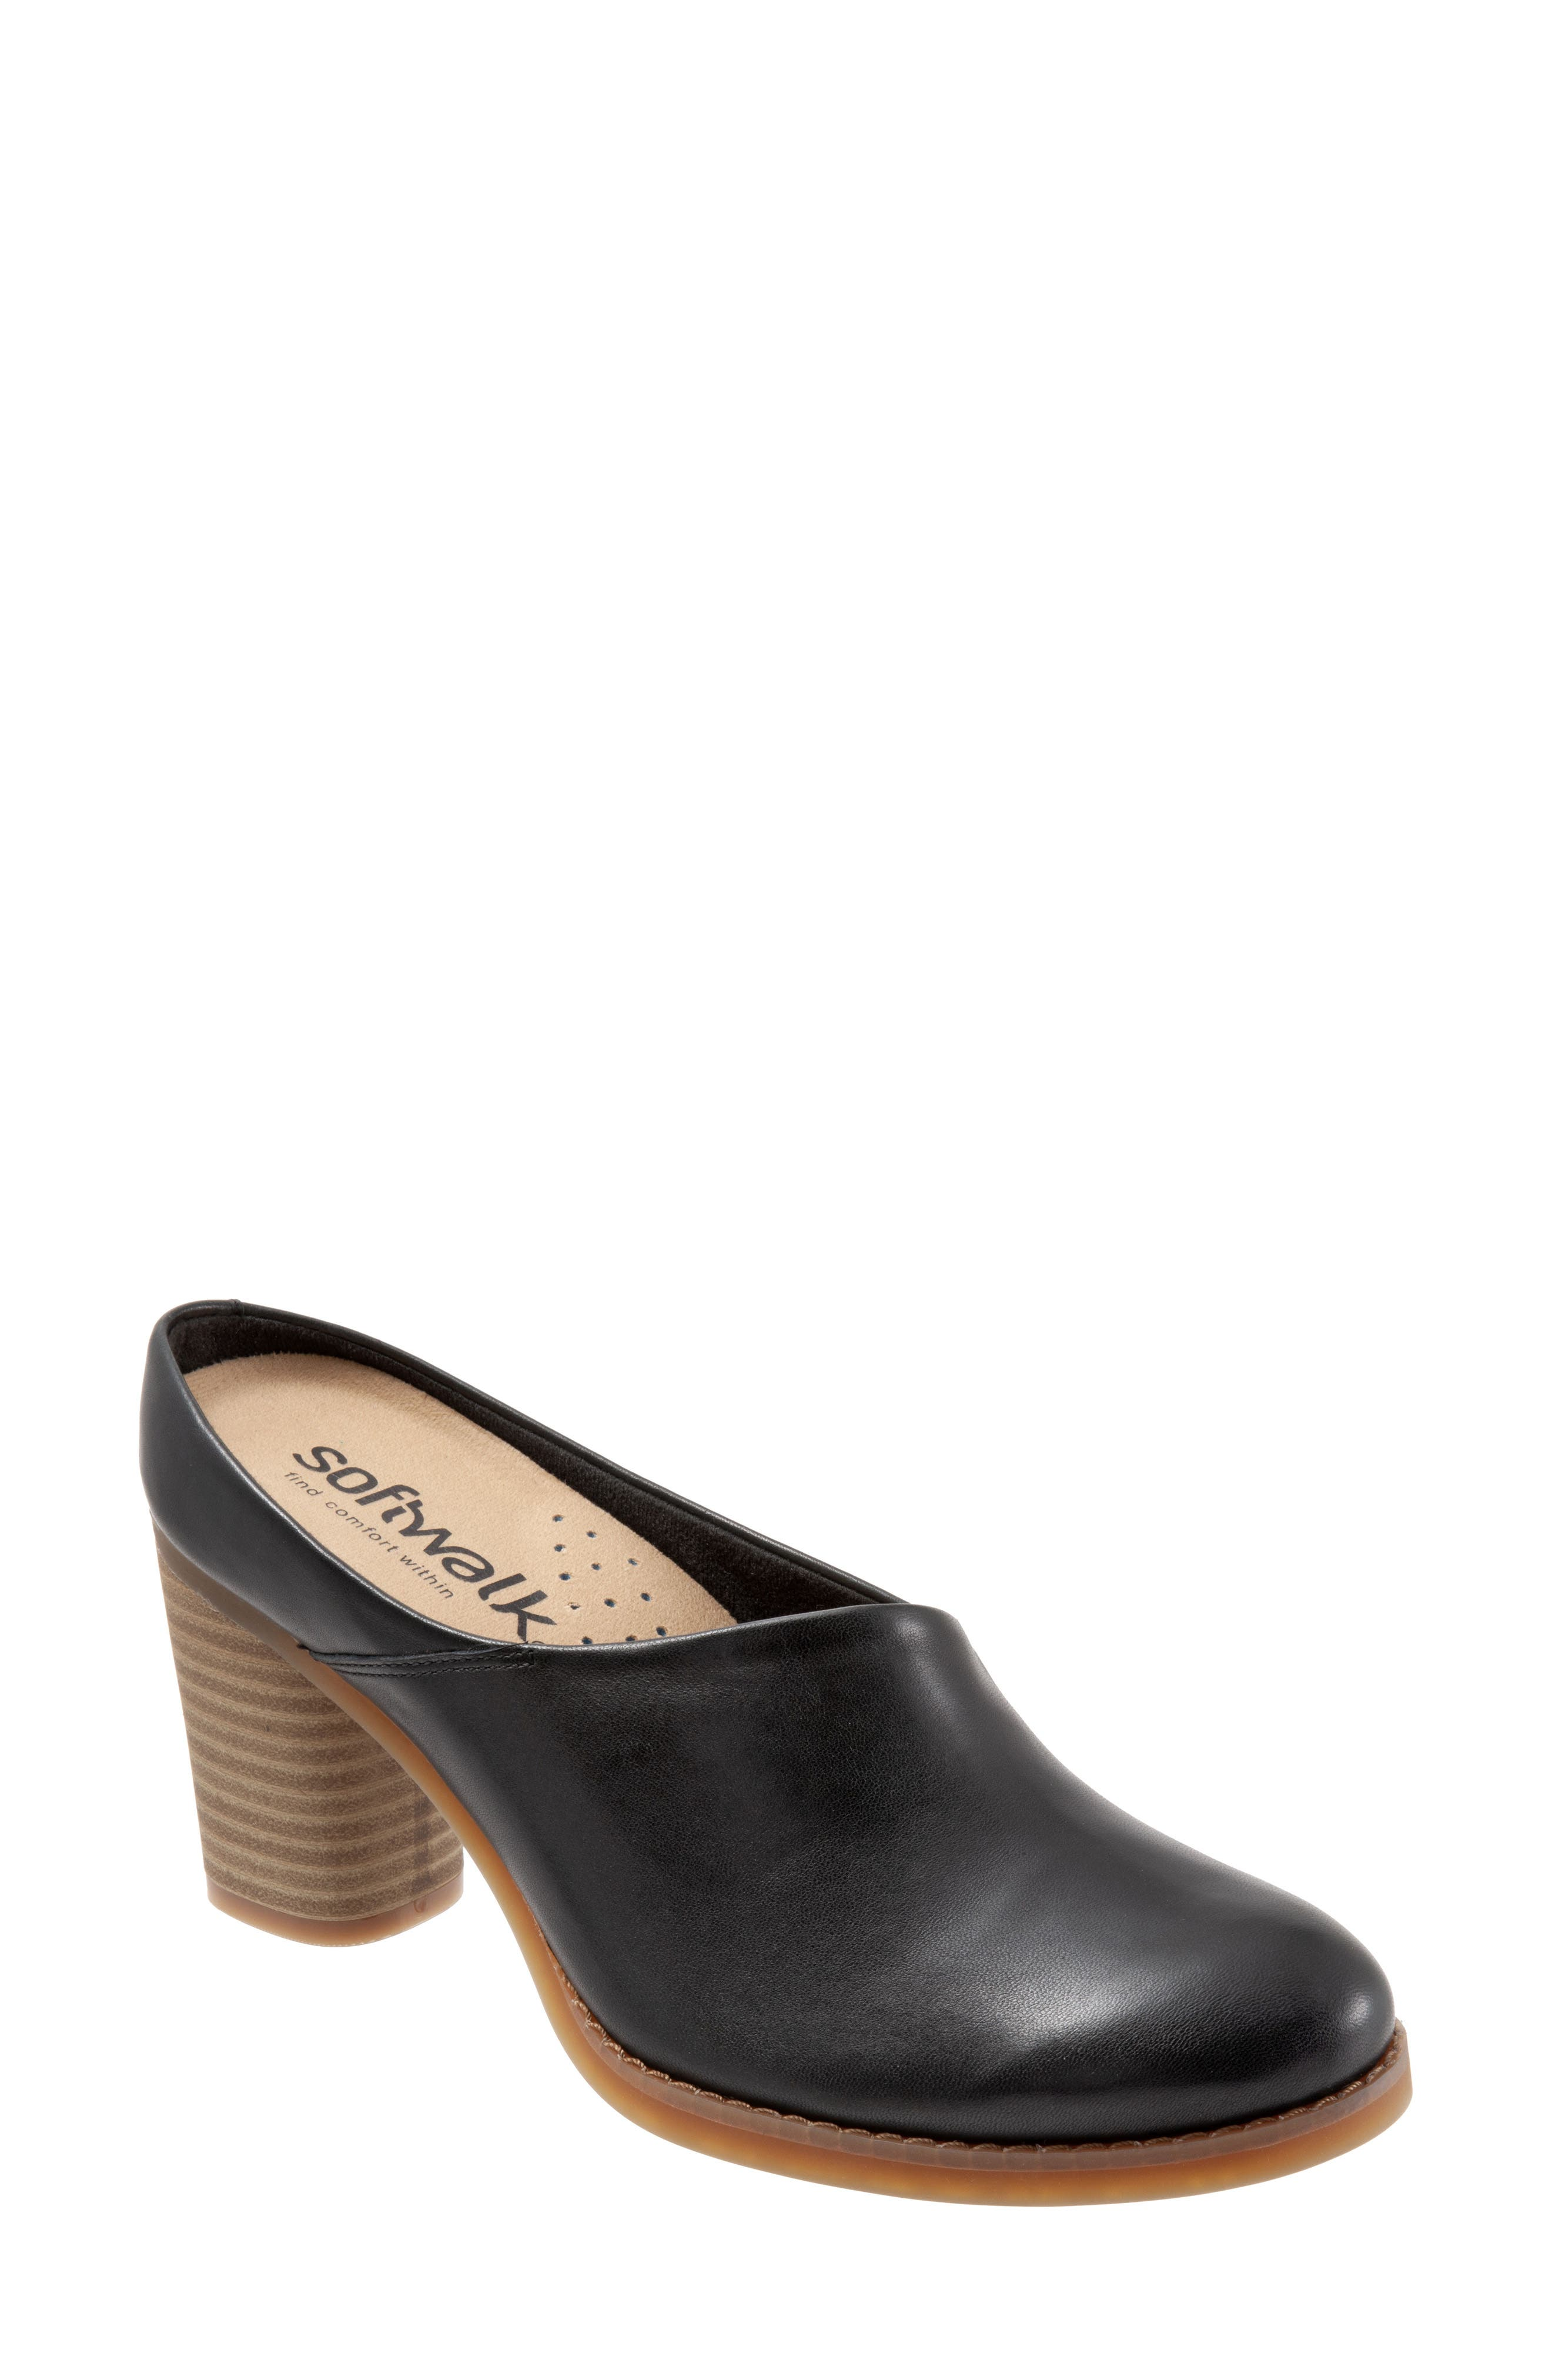 Keya Mule,                             Main thumbnail 1, color,                             BLACK LEATHER